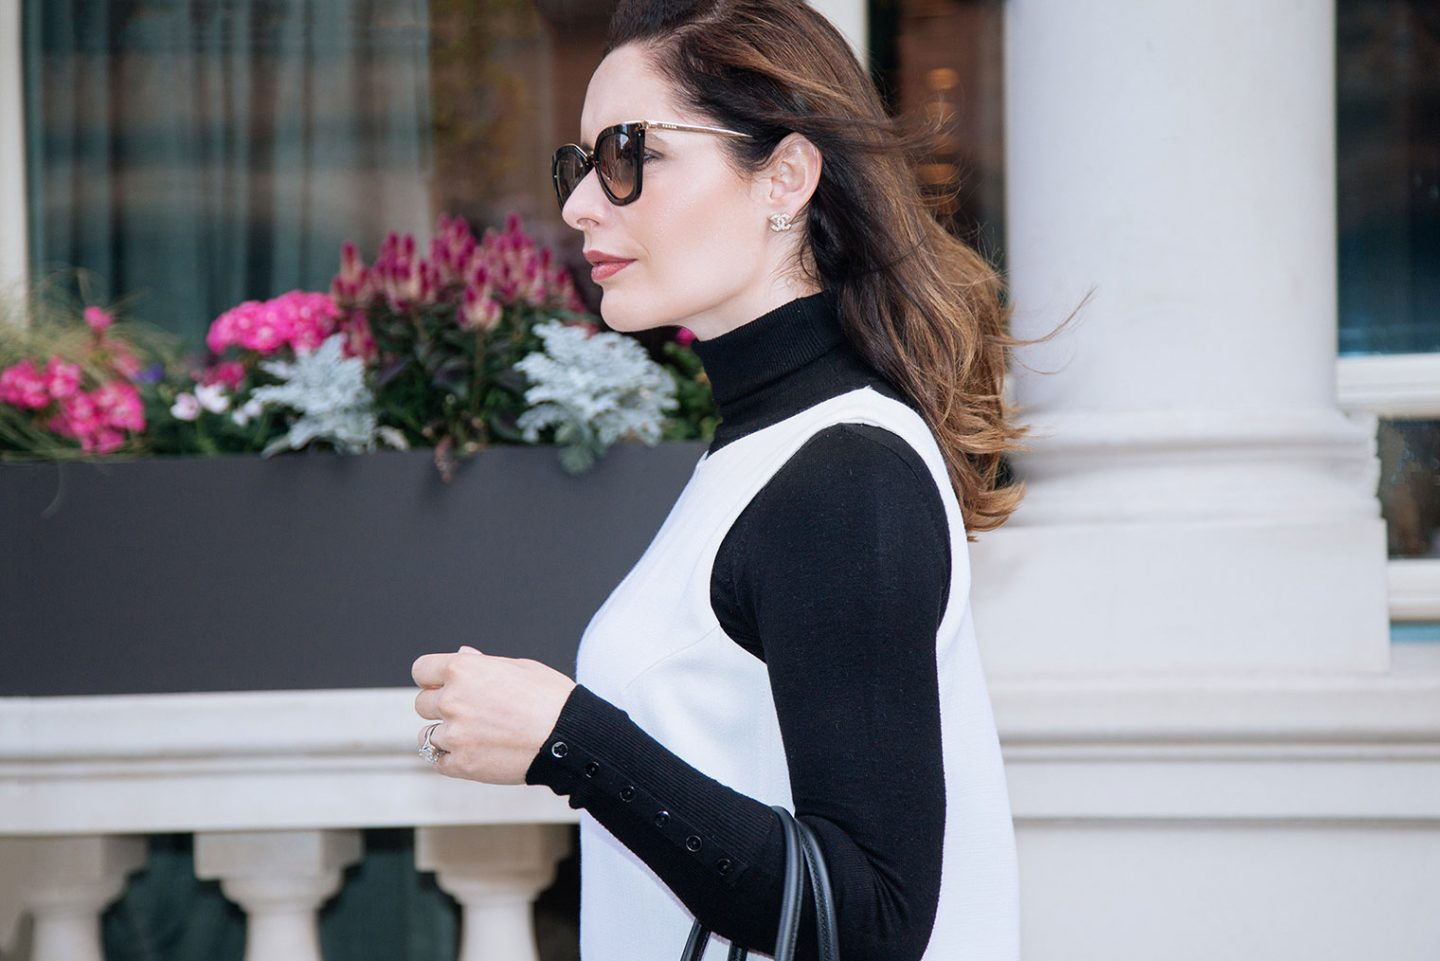 How to wear black and white outfit this autumn